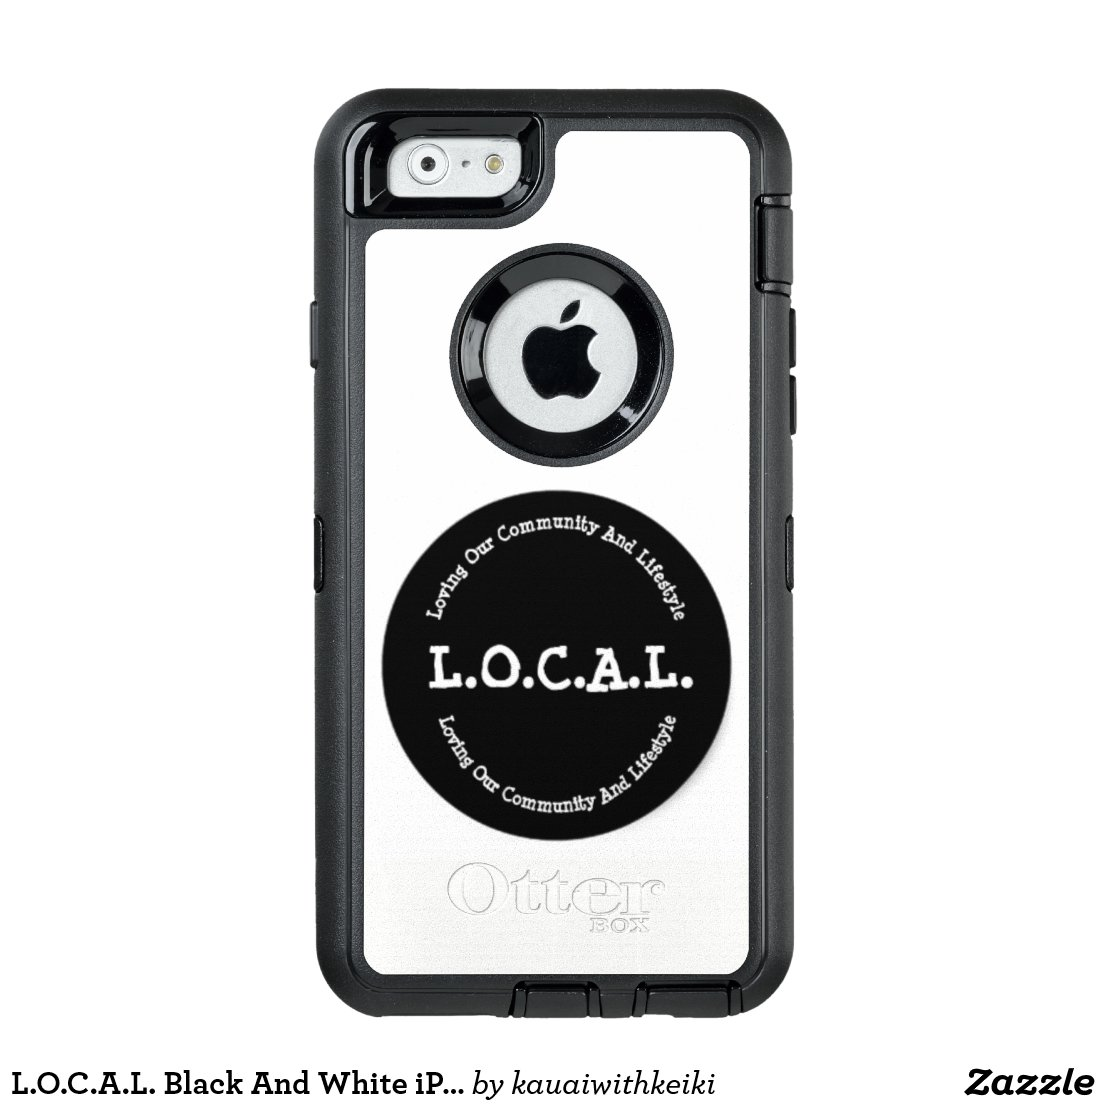 L.O.C.A.L. Black And White iPhone 6 Otter Case